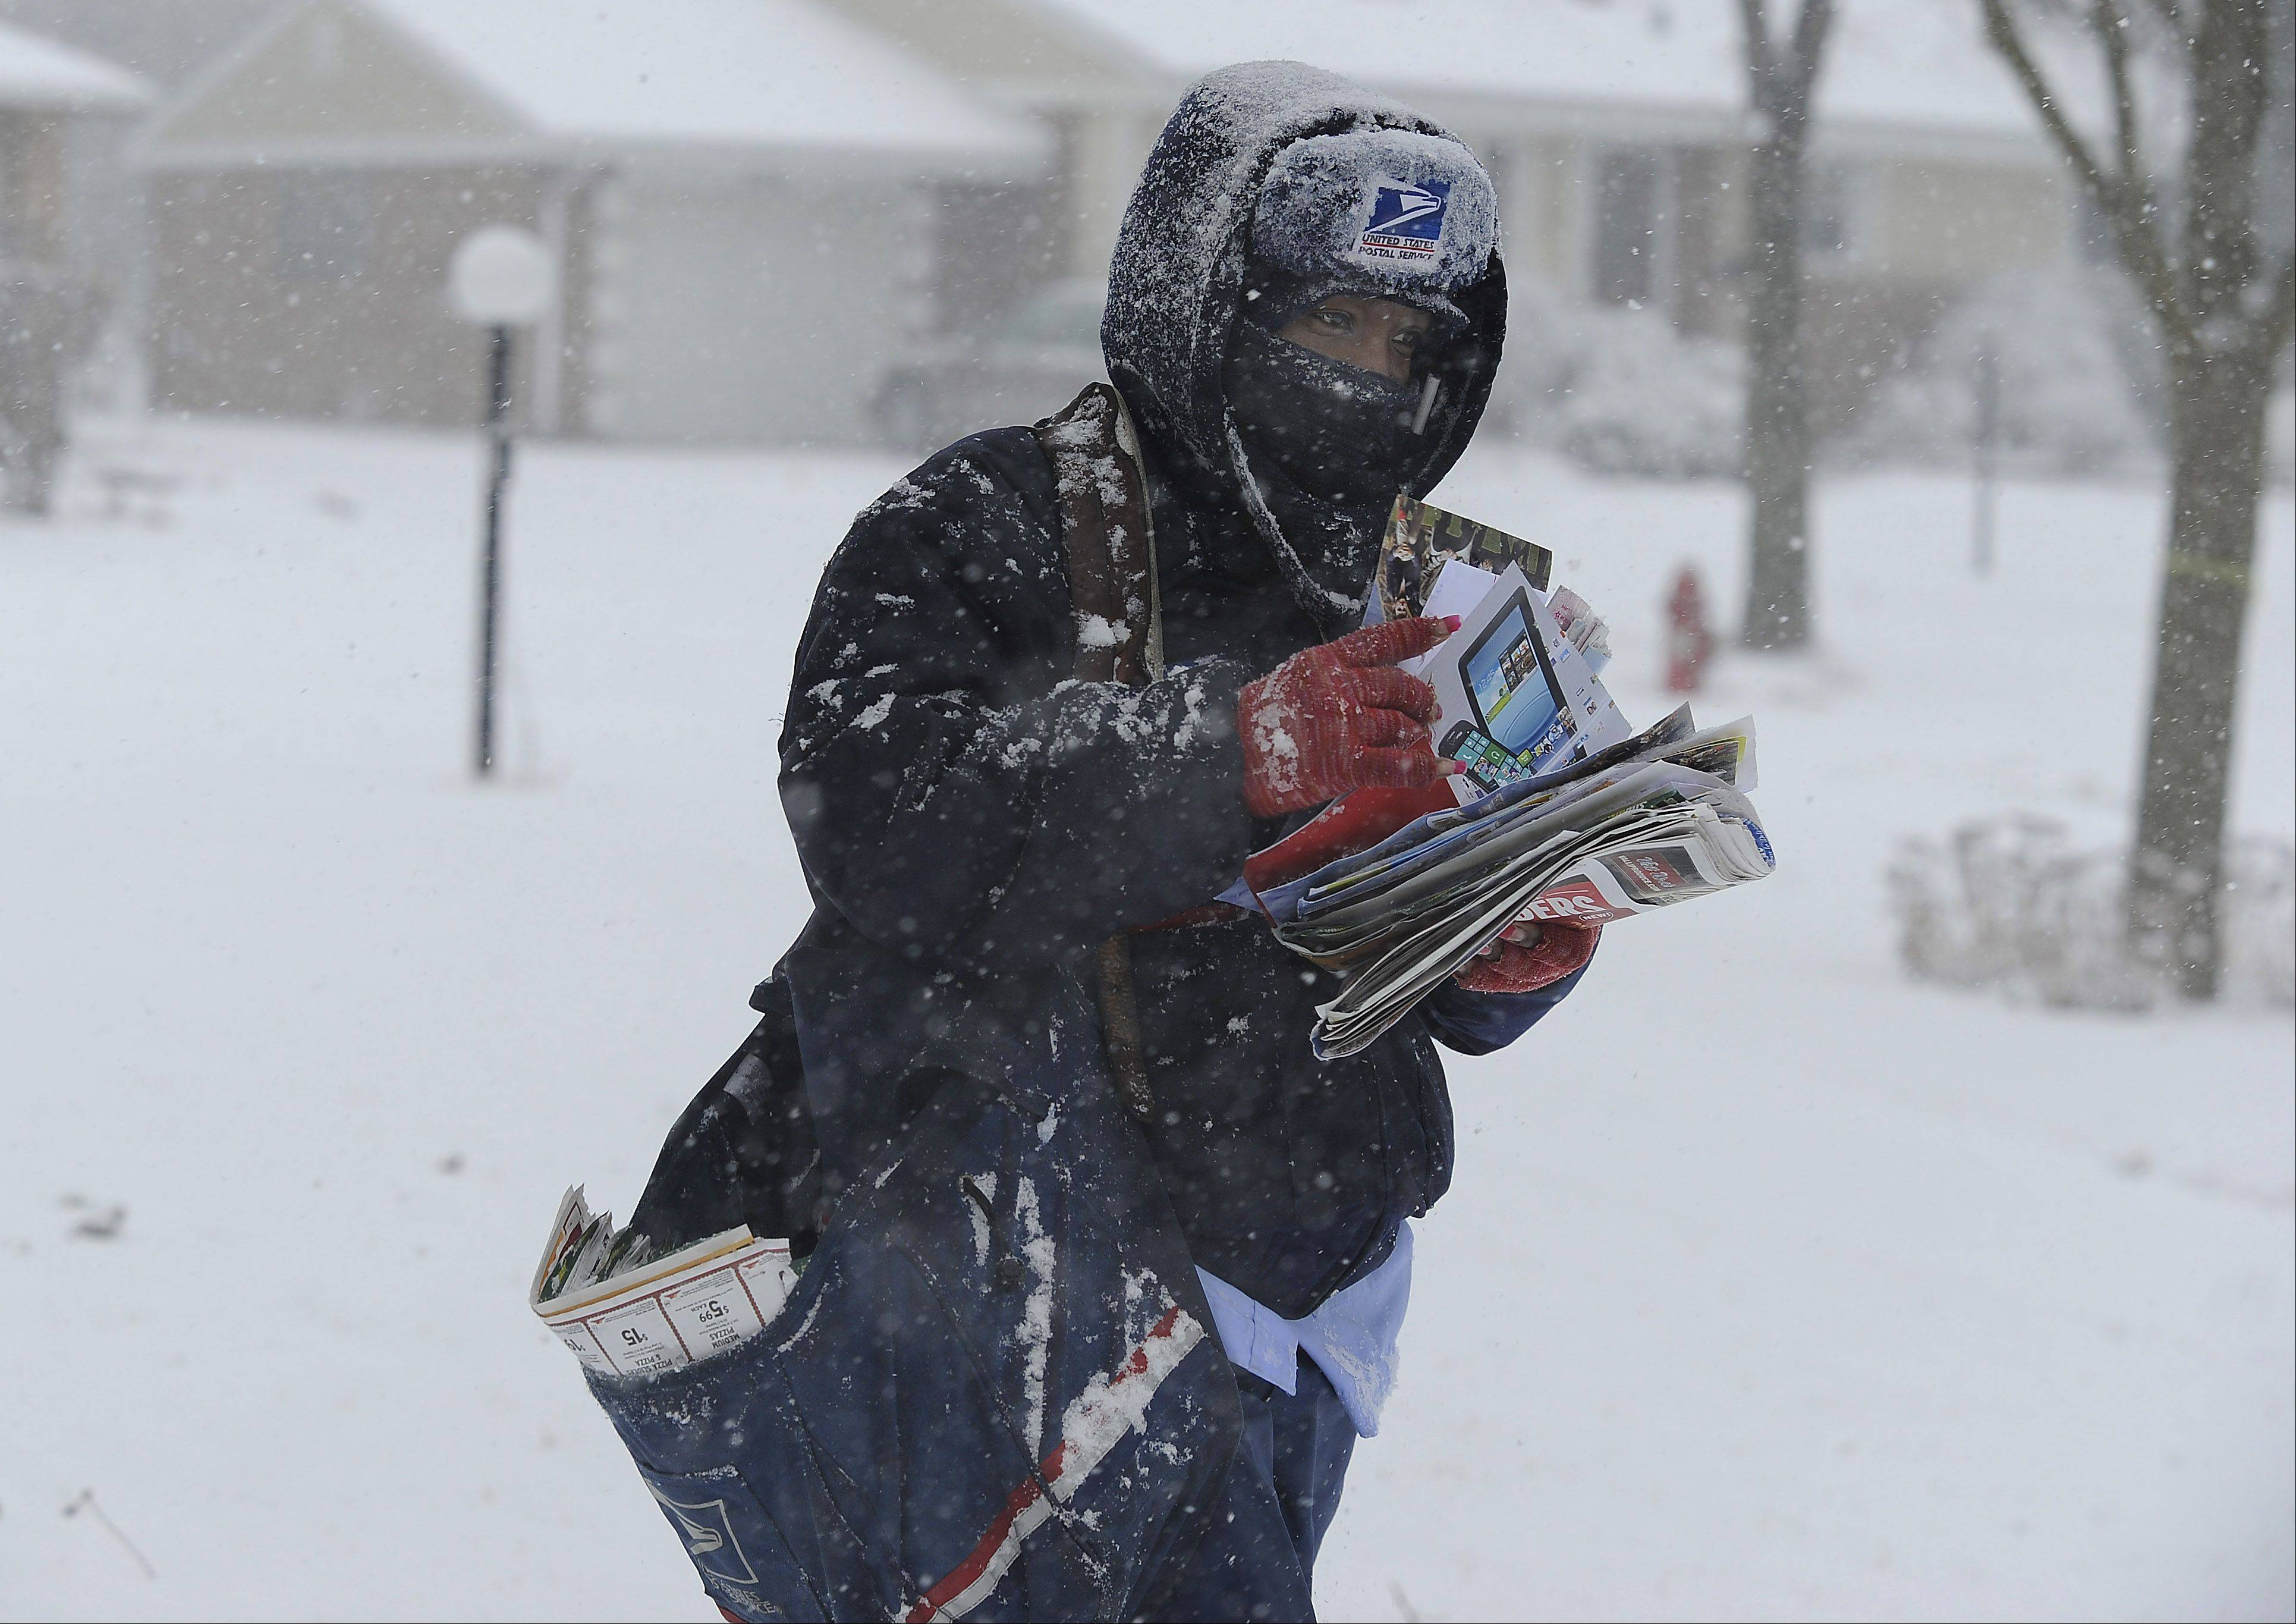 Arlington Heights mail carrier Tequilia Brock endures the wet heavy snow stating the fact that she hates it during her afternoon route a winter storm moves through the Northwest suburbs area on Tuesday.